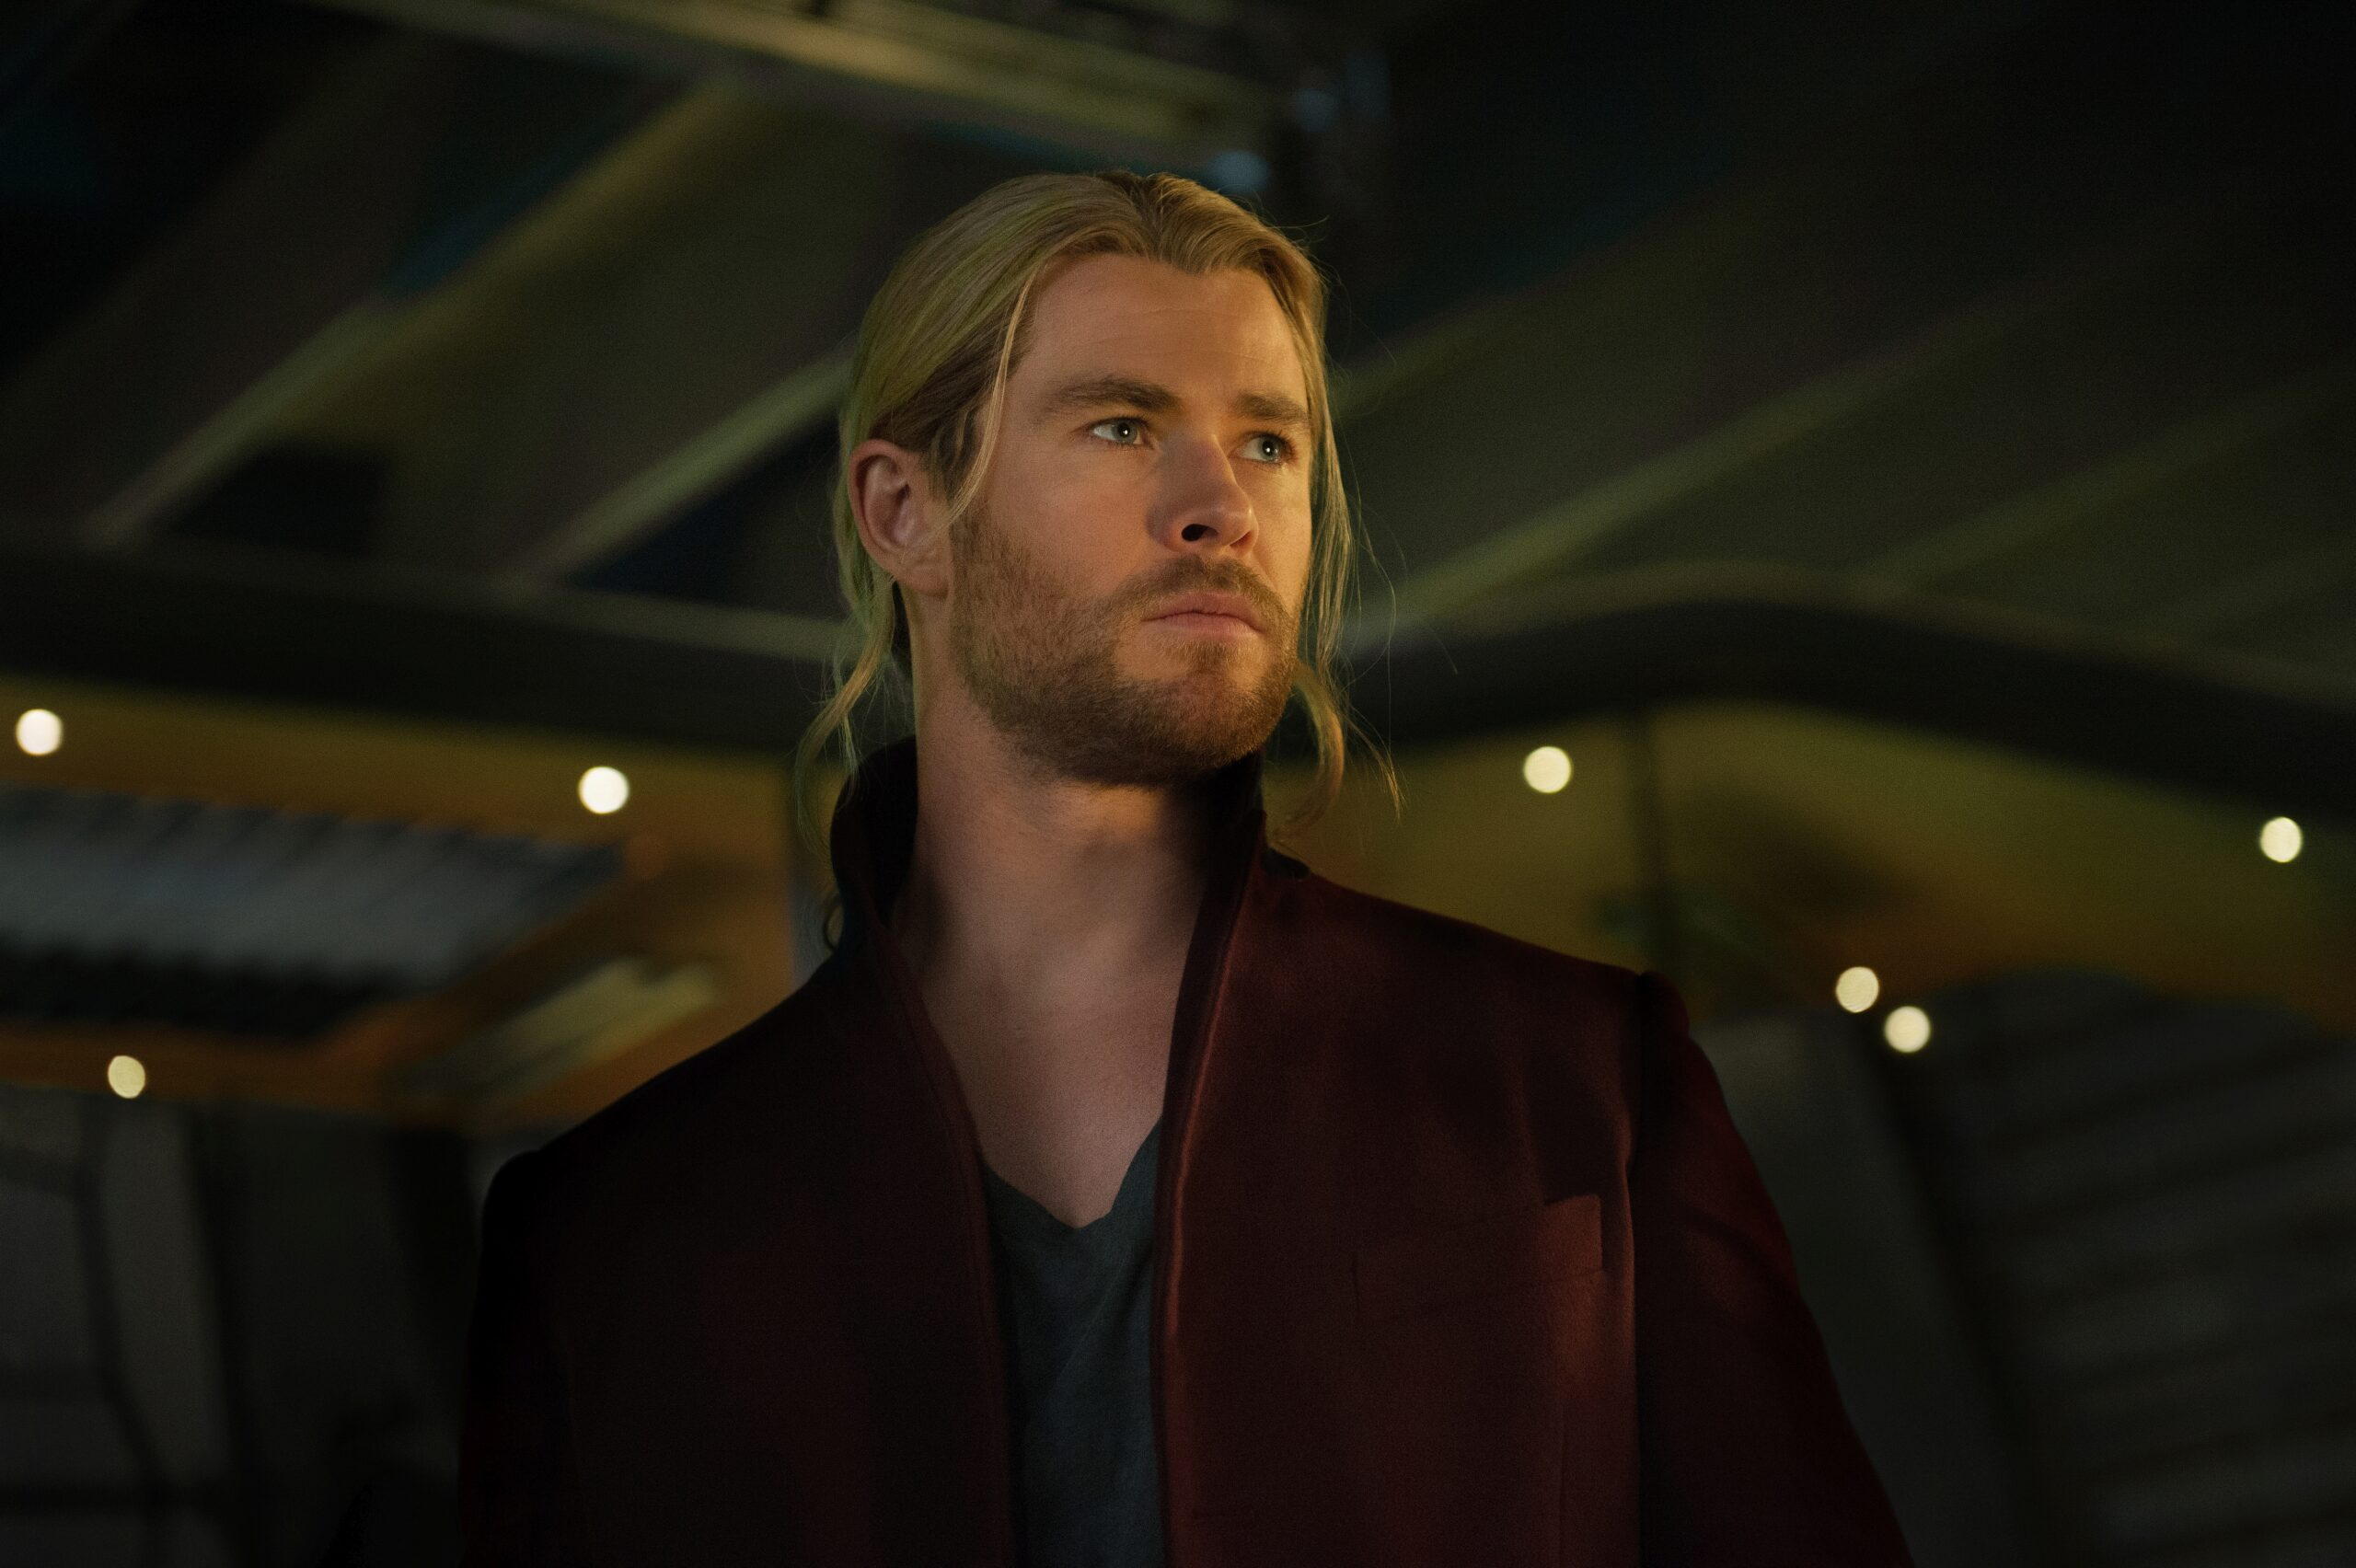 thor full movie download